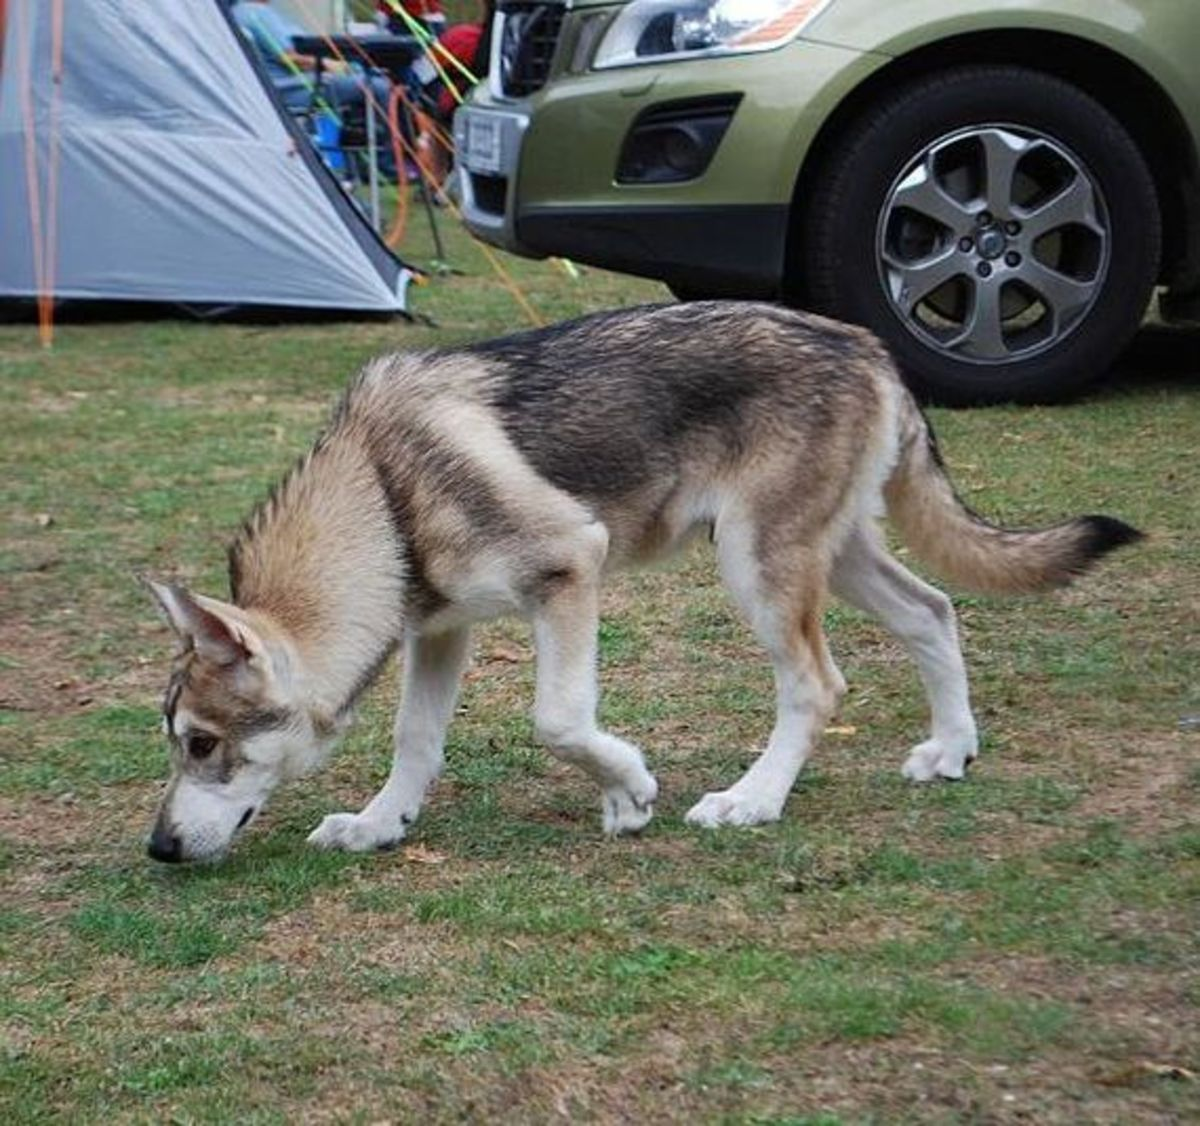 A Utonagan dog looks similar to a wolf.